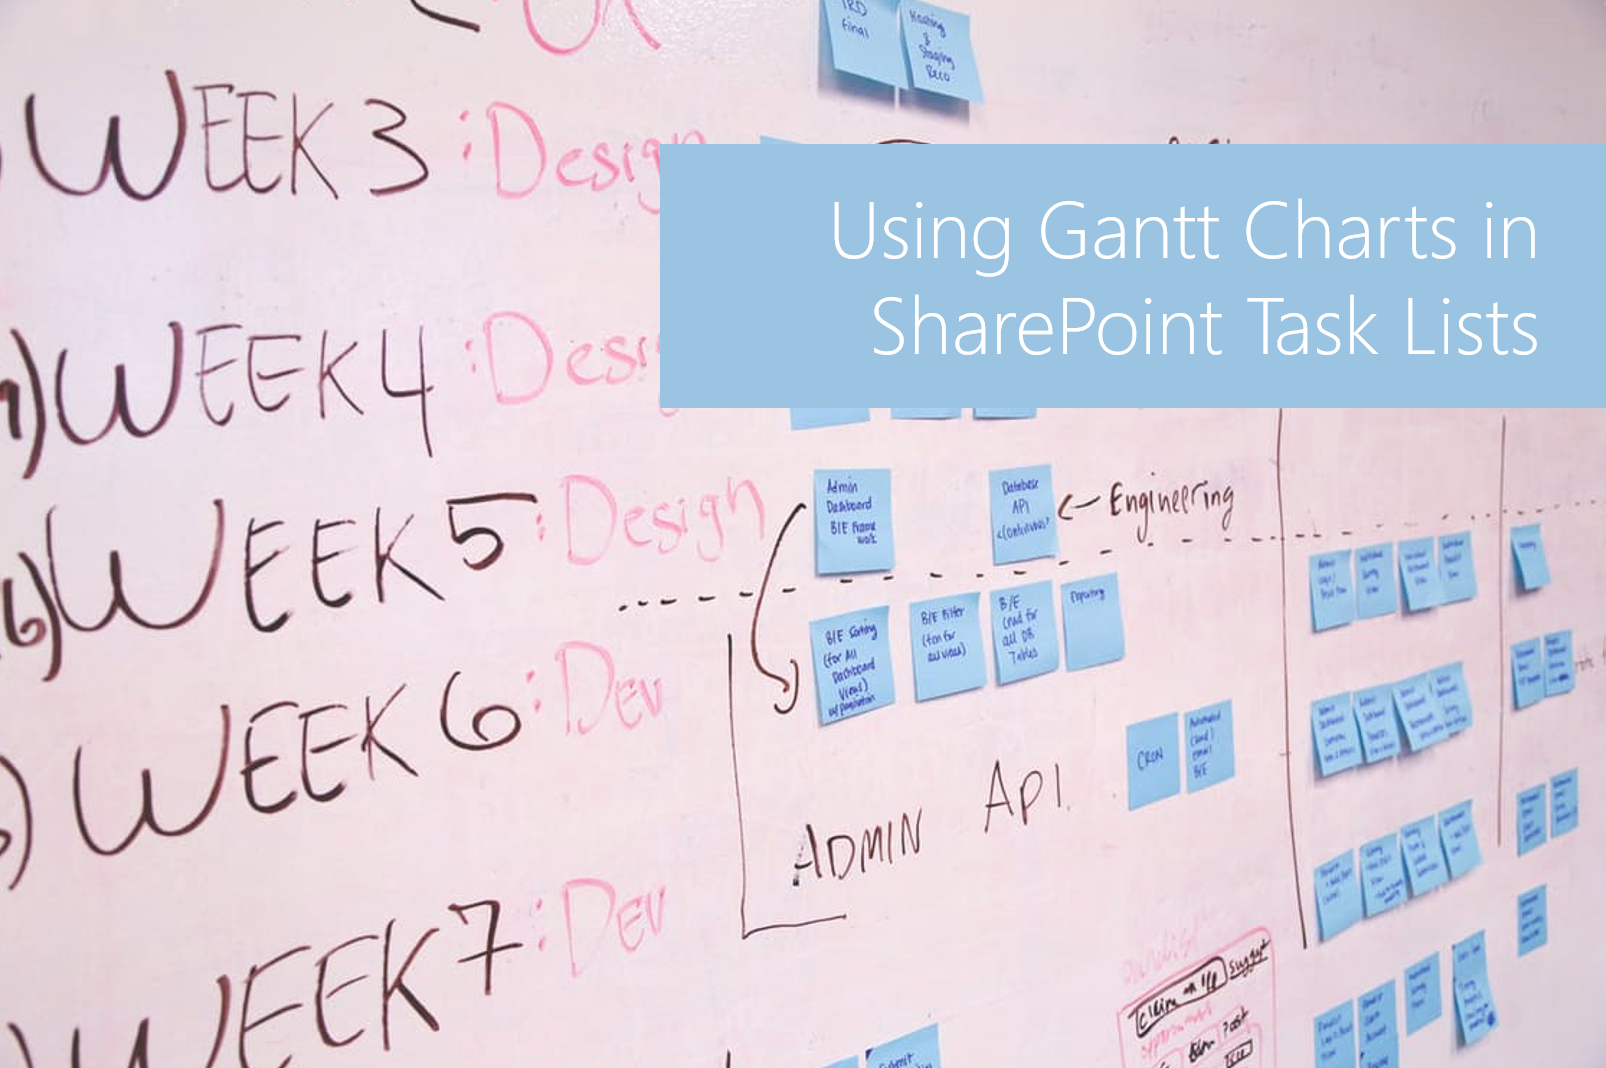 Day 350 using gantt charts in sharepoint task lists tracy van 2017 02 13 201918 images for social media ccuart